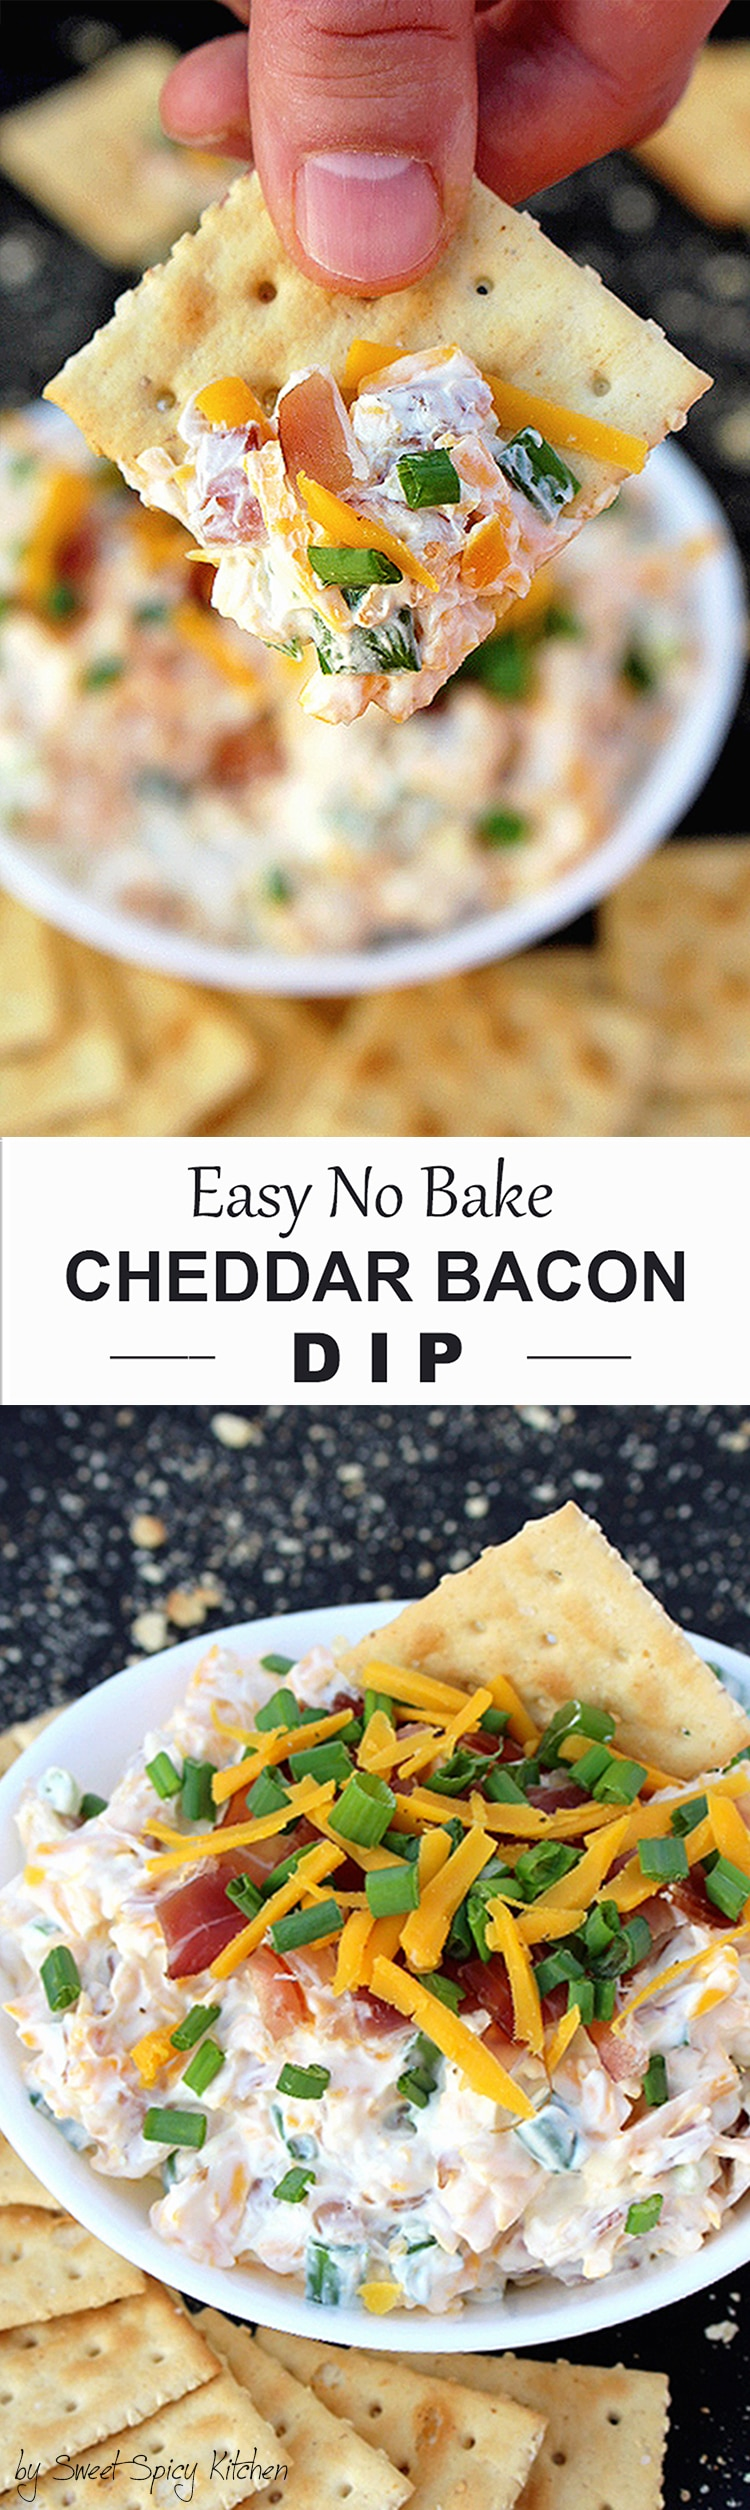 Untitled-13111 No Bake Cheddar Bacon Dip